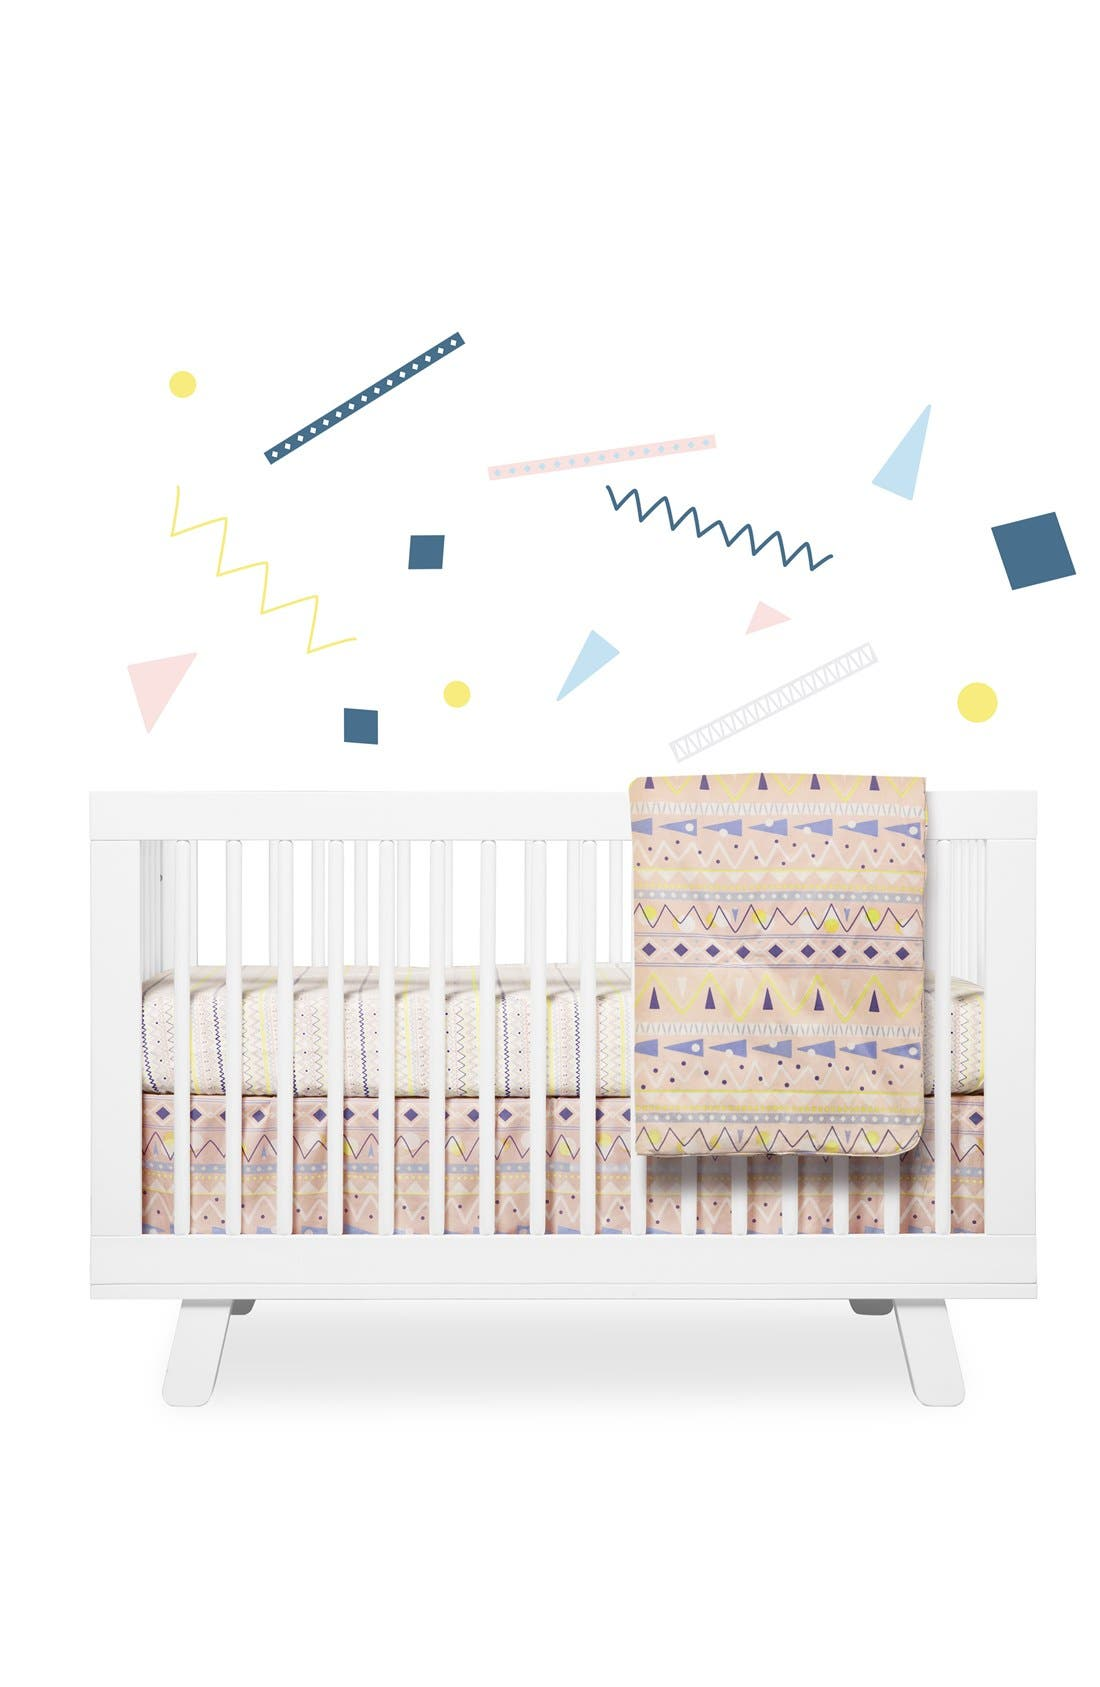 BABYLETTO 'Desert' Crib Sheet, Crib Skirt, Changing Pad Cover, Blanket & Wall Decals, Main, color, OFF WHITE